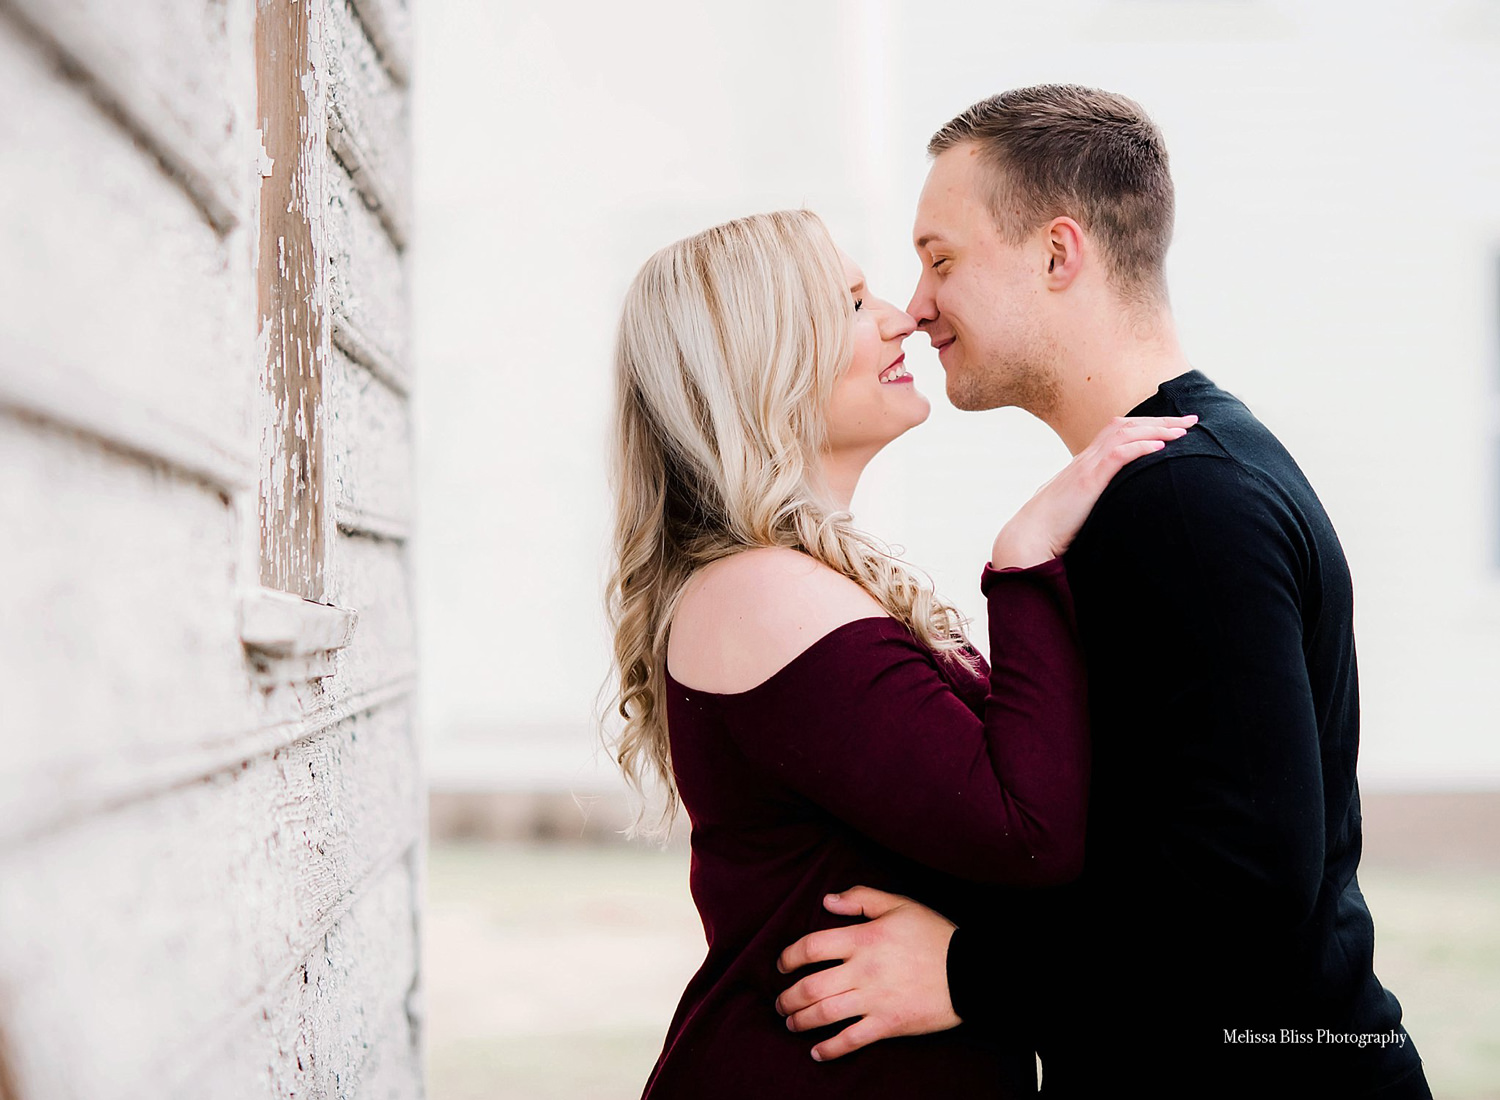 rustic-romantic-engagement-photos-smithfield-va-by-melissa-bliss-photography-norfolk-wedding-photographer.jpg